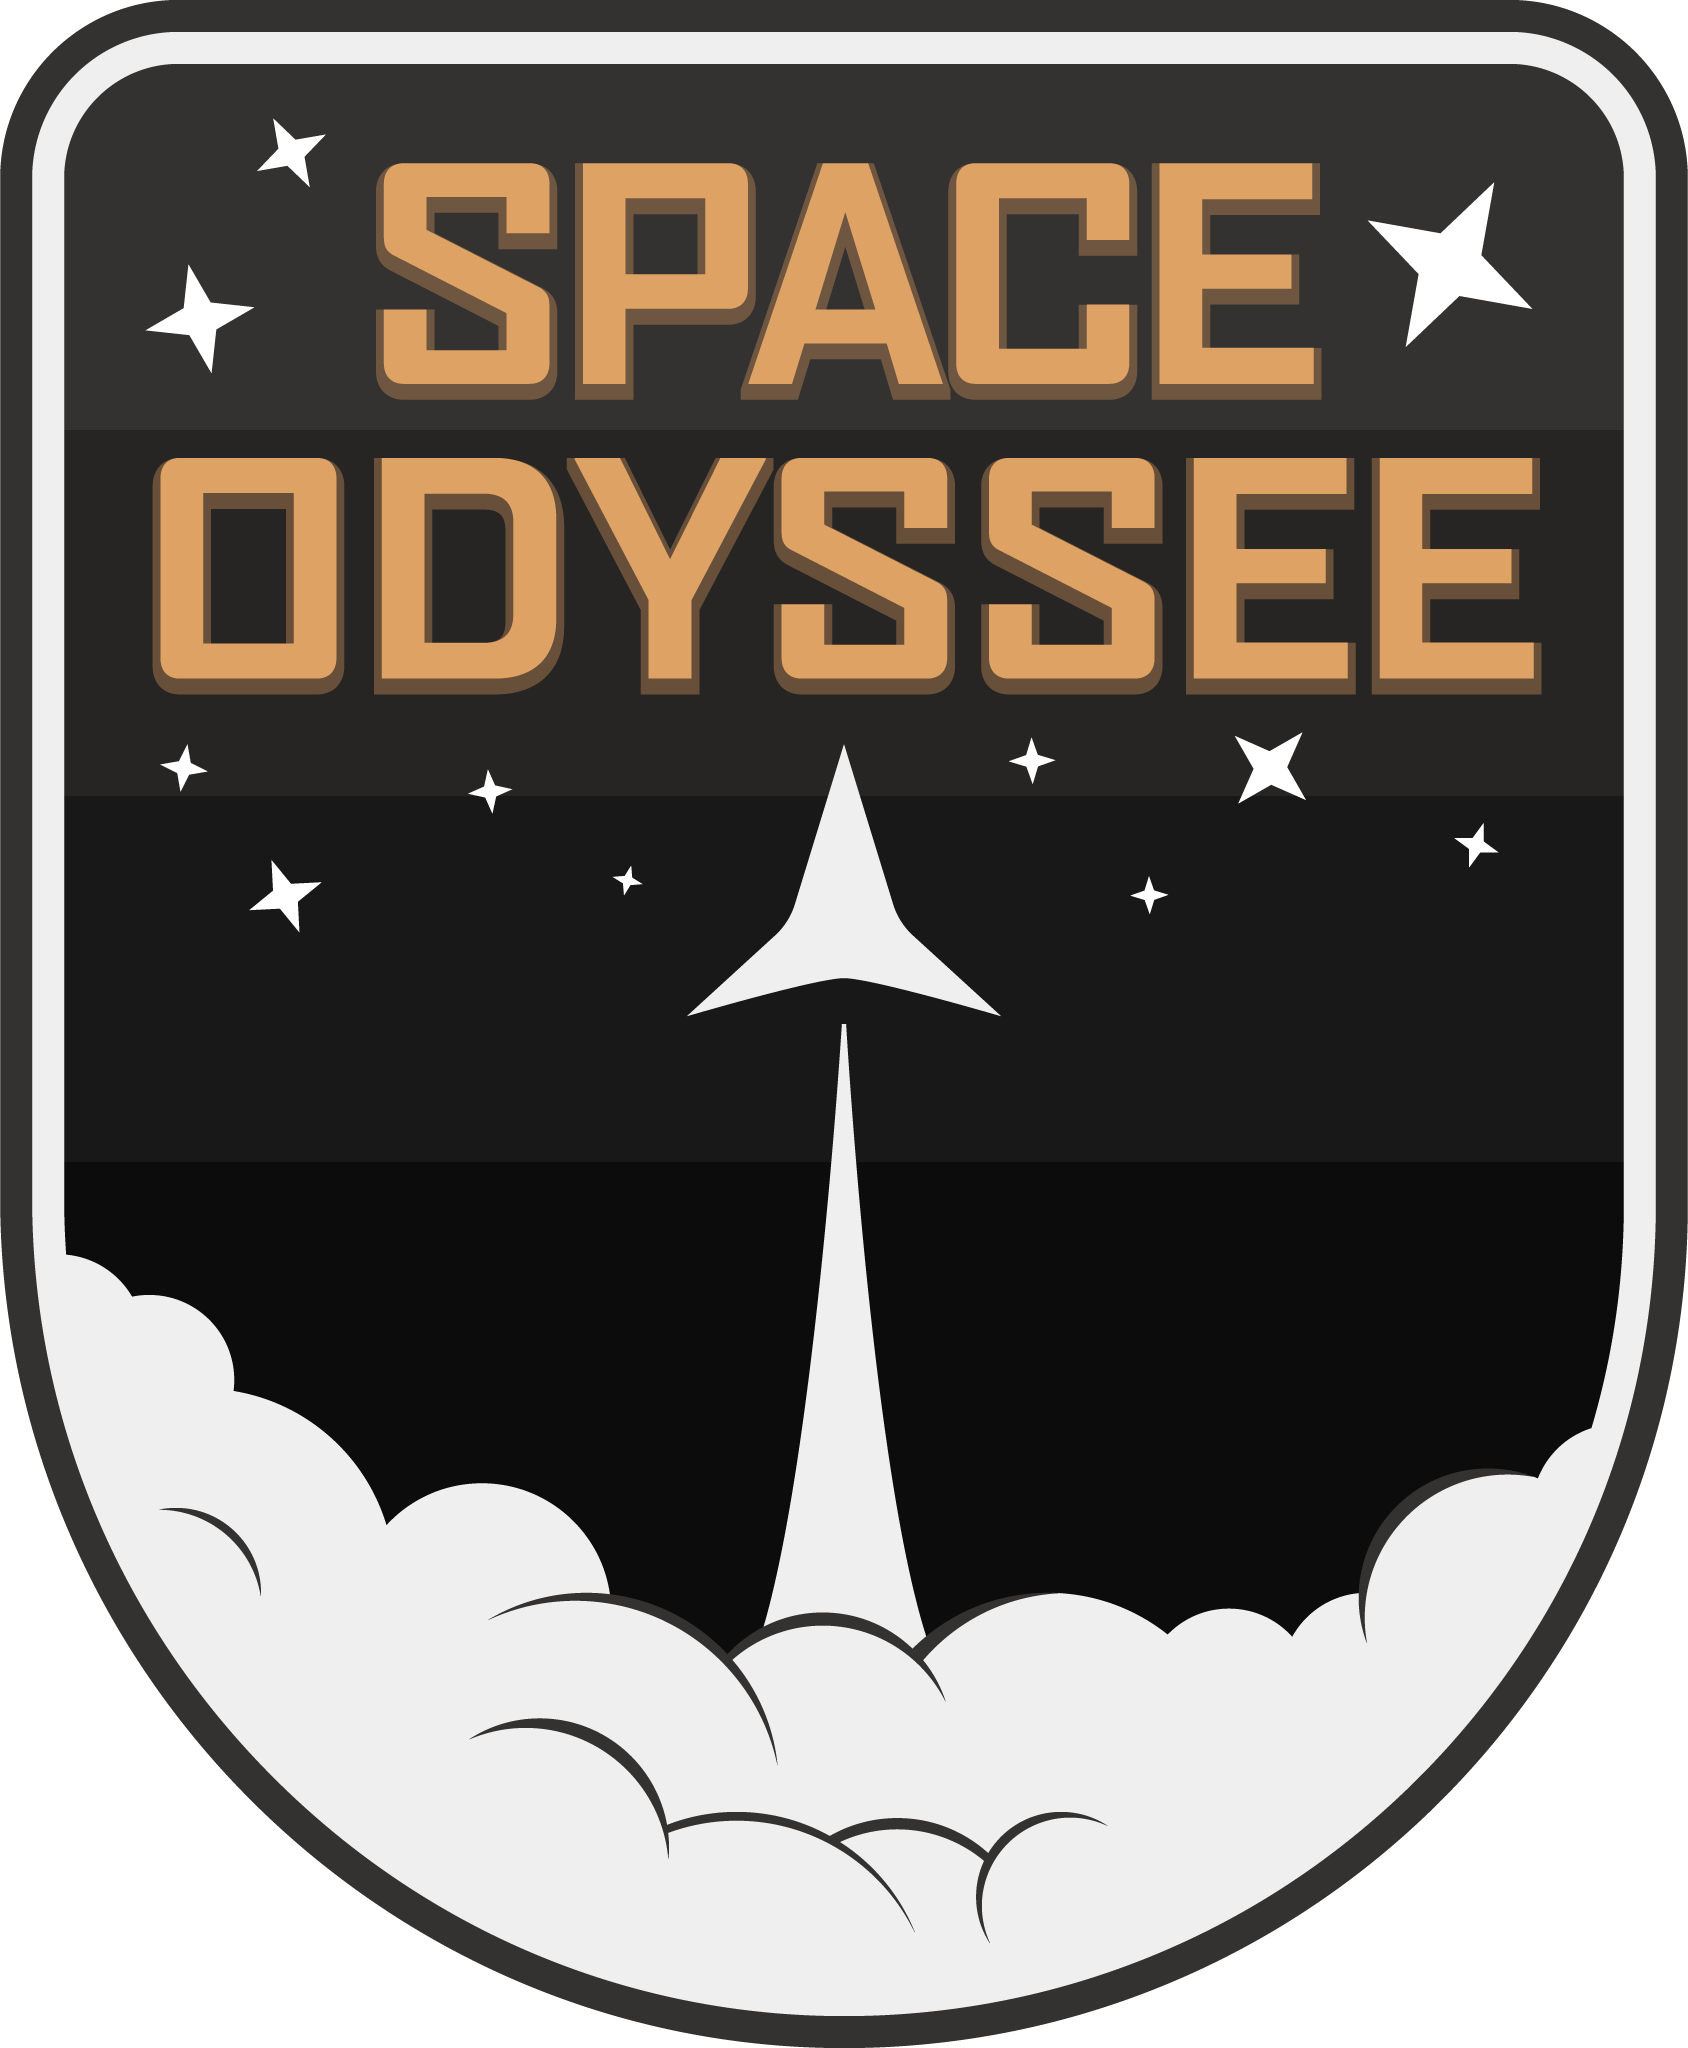 Space Odyssee